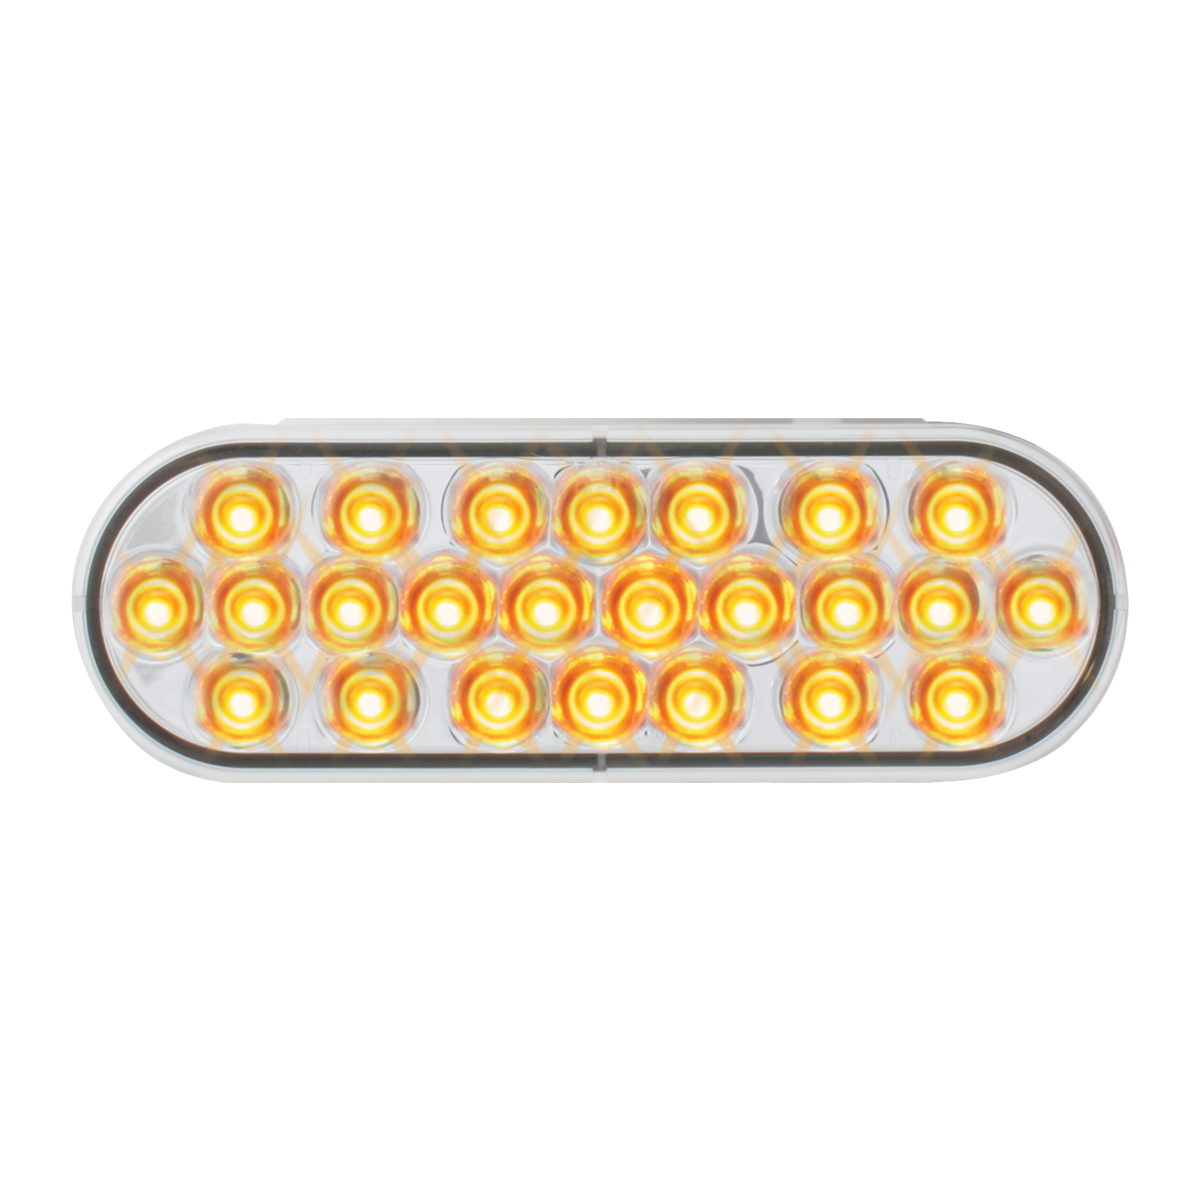 76526 Oval Pearl LED Strobe Light in Amber/Clear